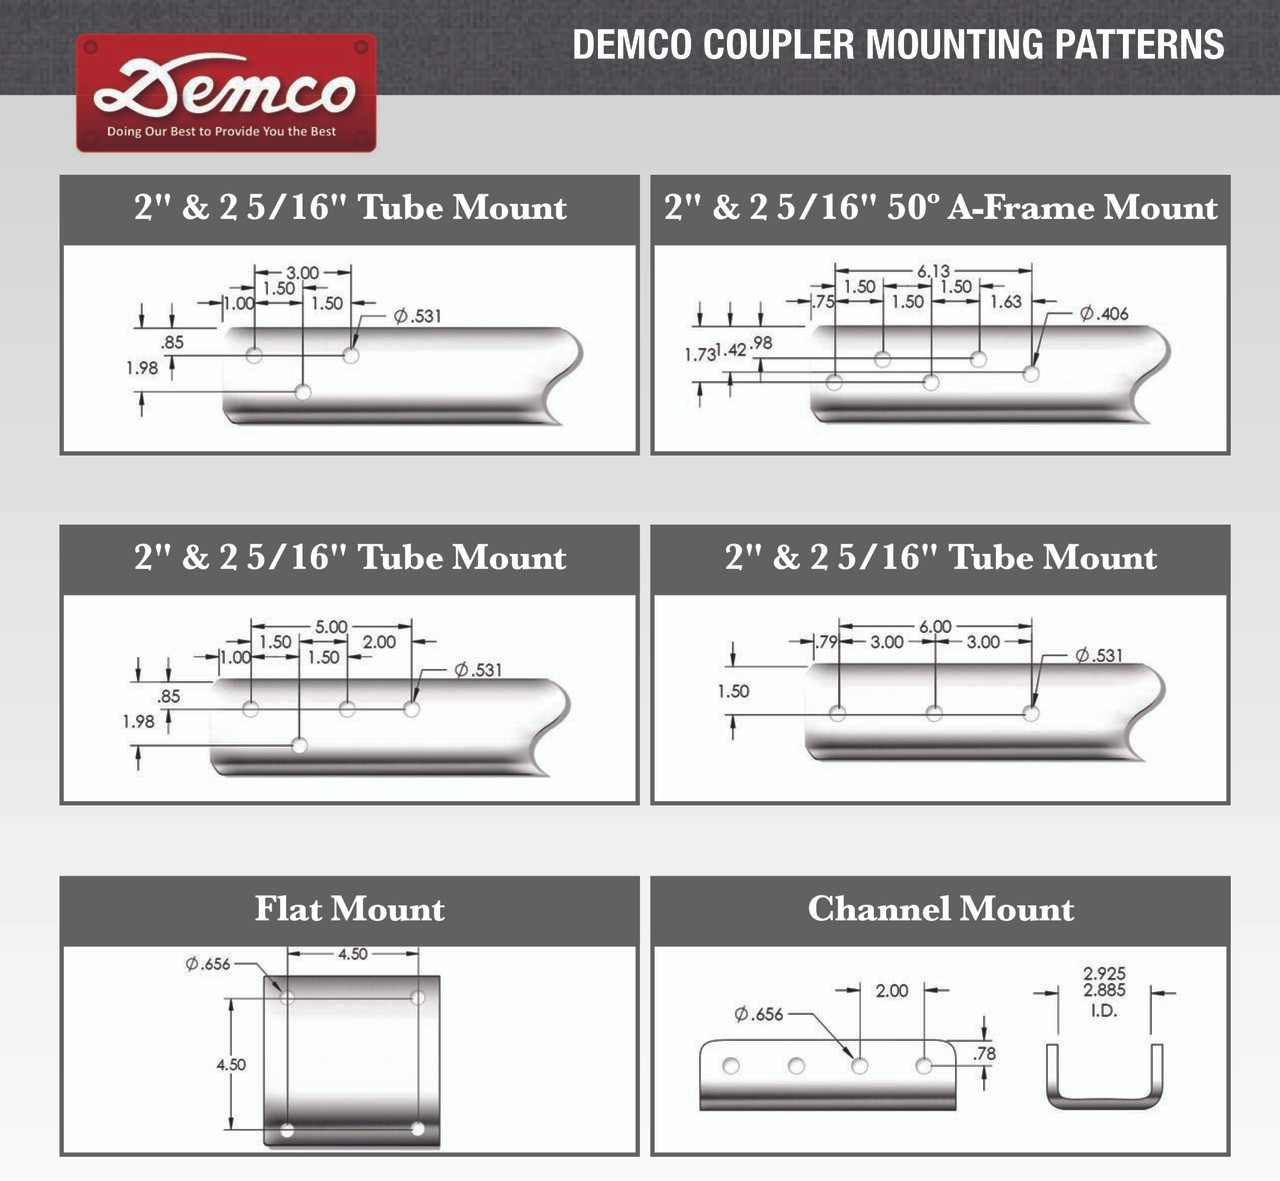 "15080-81 --- Demco Plate-Mount 2"" Coupler - 10,000 lb Capacity - Black"